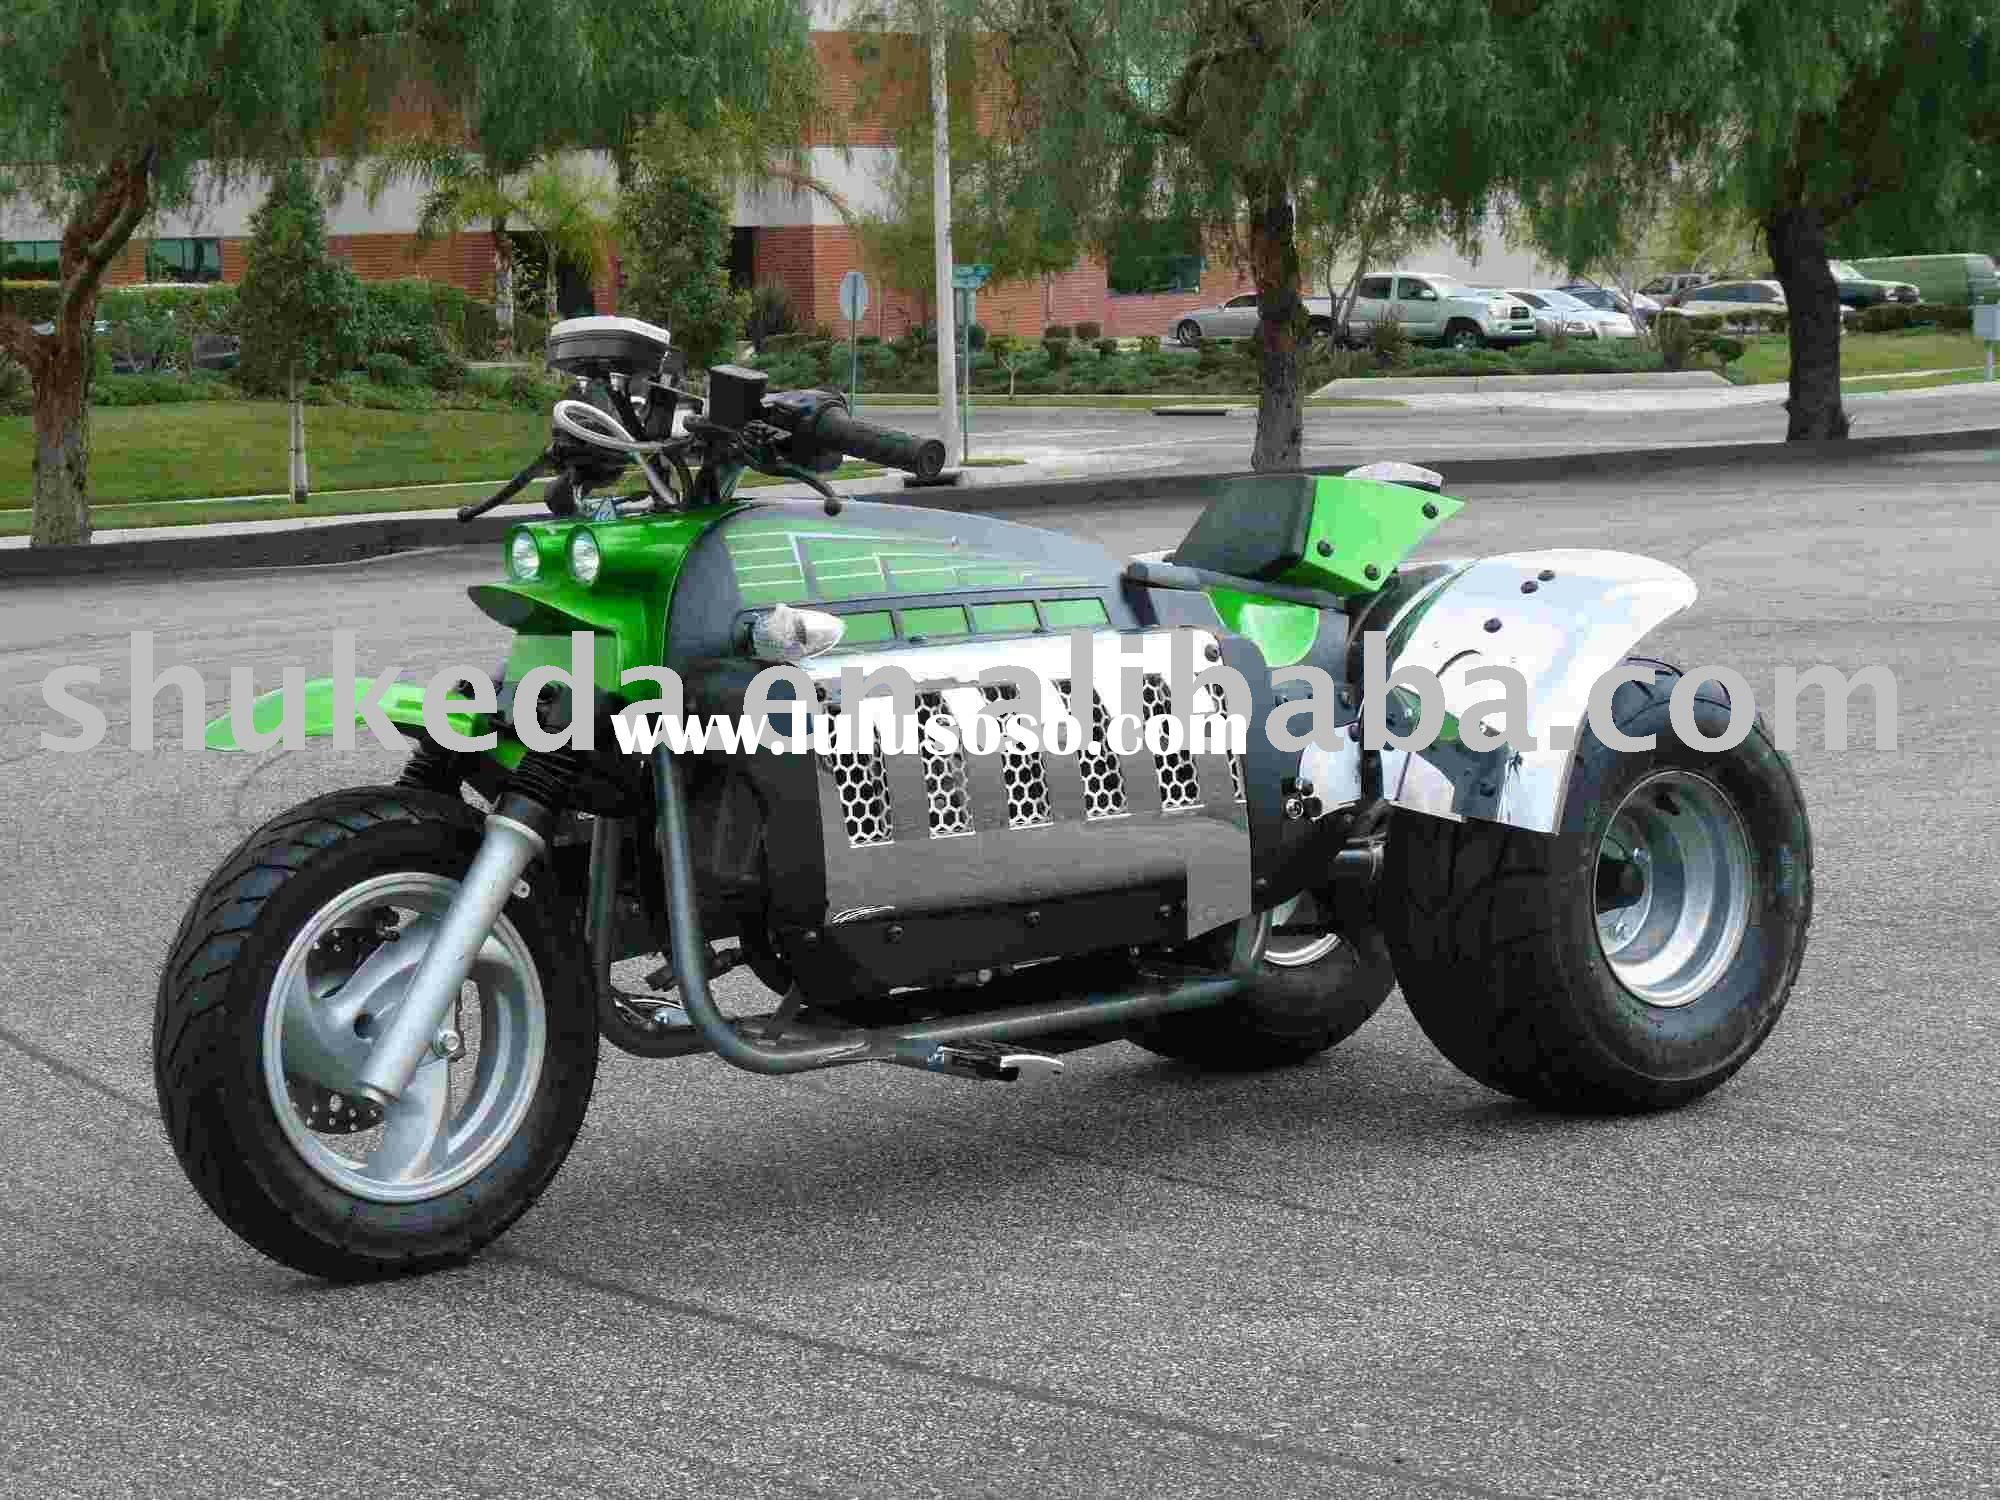 3 Wheels gas scooter